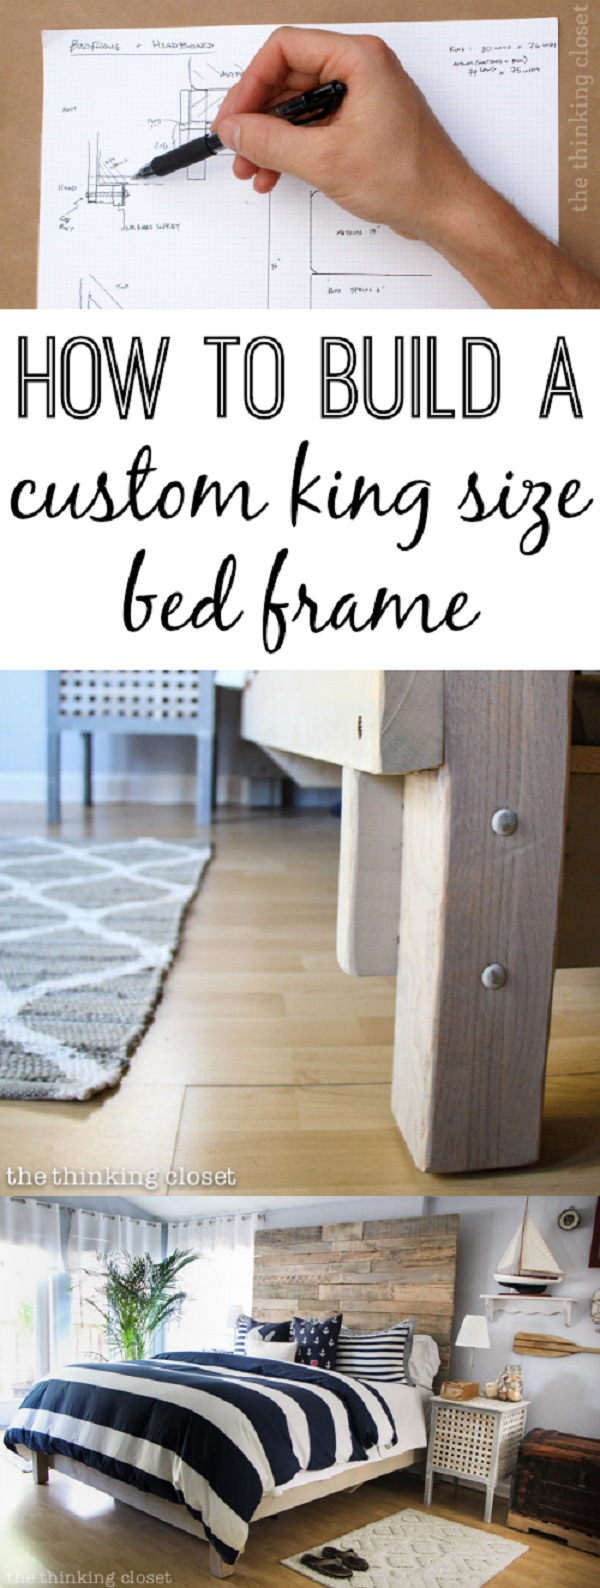 45 Easy DIY Bed Frame Projects You Can Build on a Budget - Check out the tutorial on how to make a #DIY custom king size bed frame. Looks easy enough! #BedroomIdeas #HomeDecorIdeas